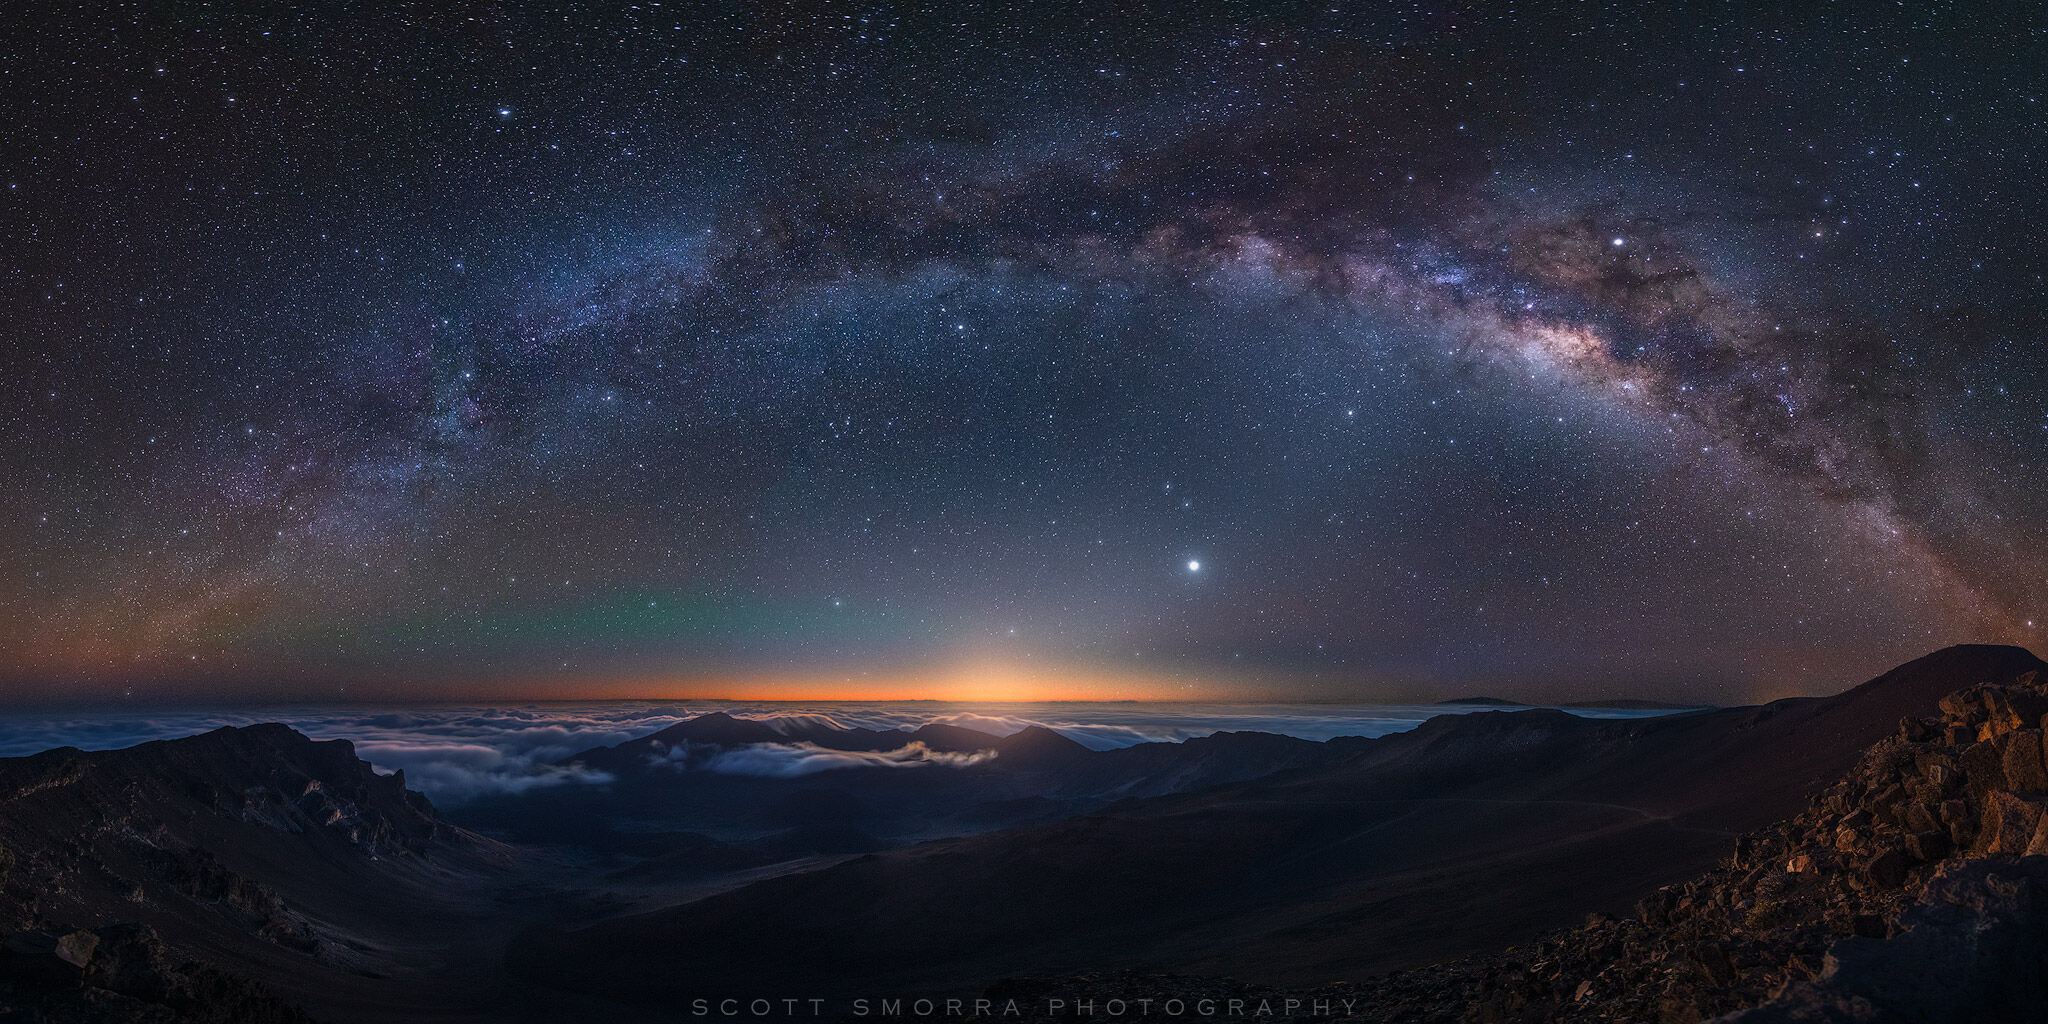 Hawaii, Maui, Haleakala National Park, night, Milky Way, summit, stars, Venus, photo